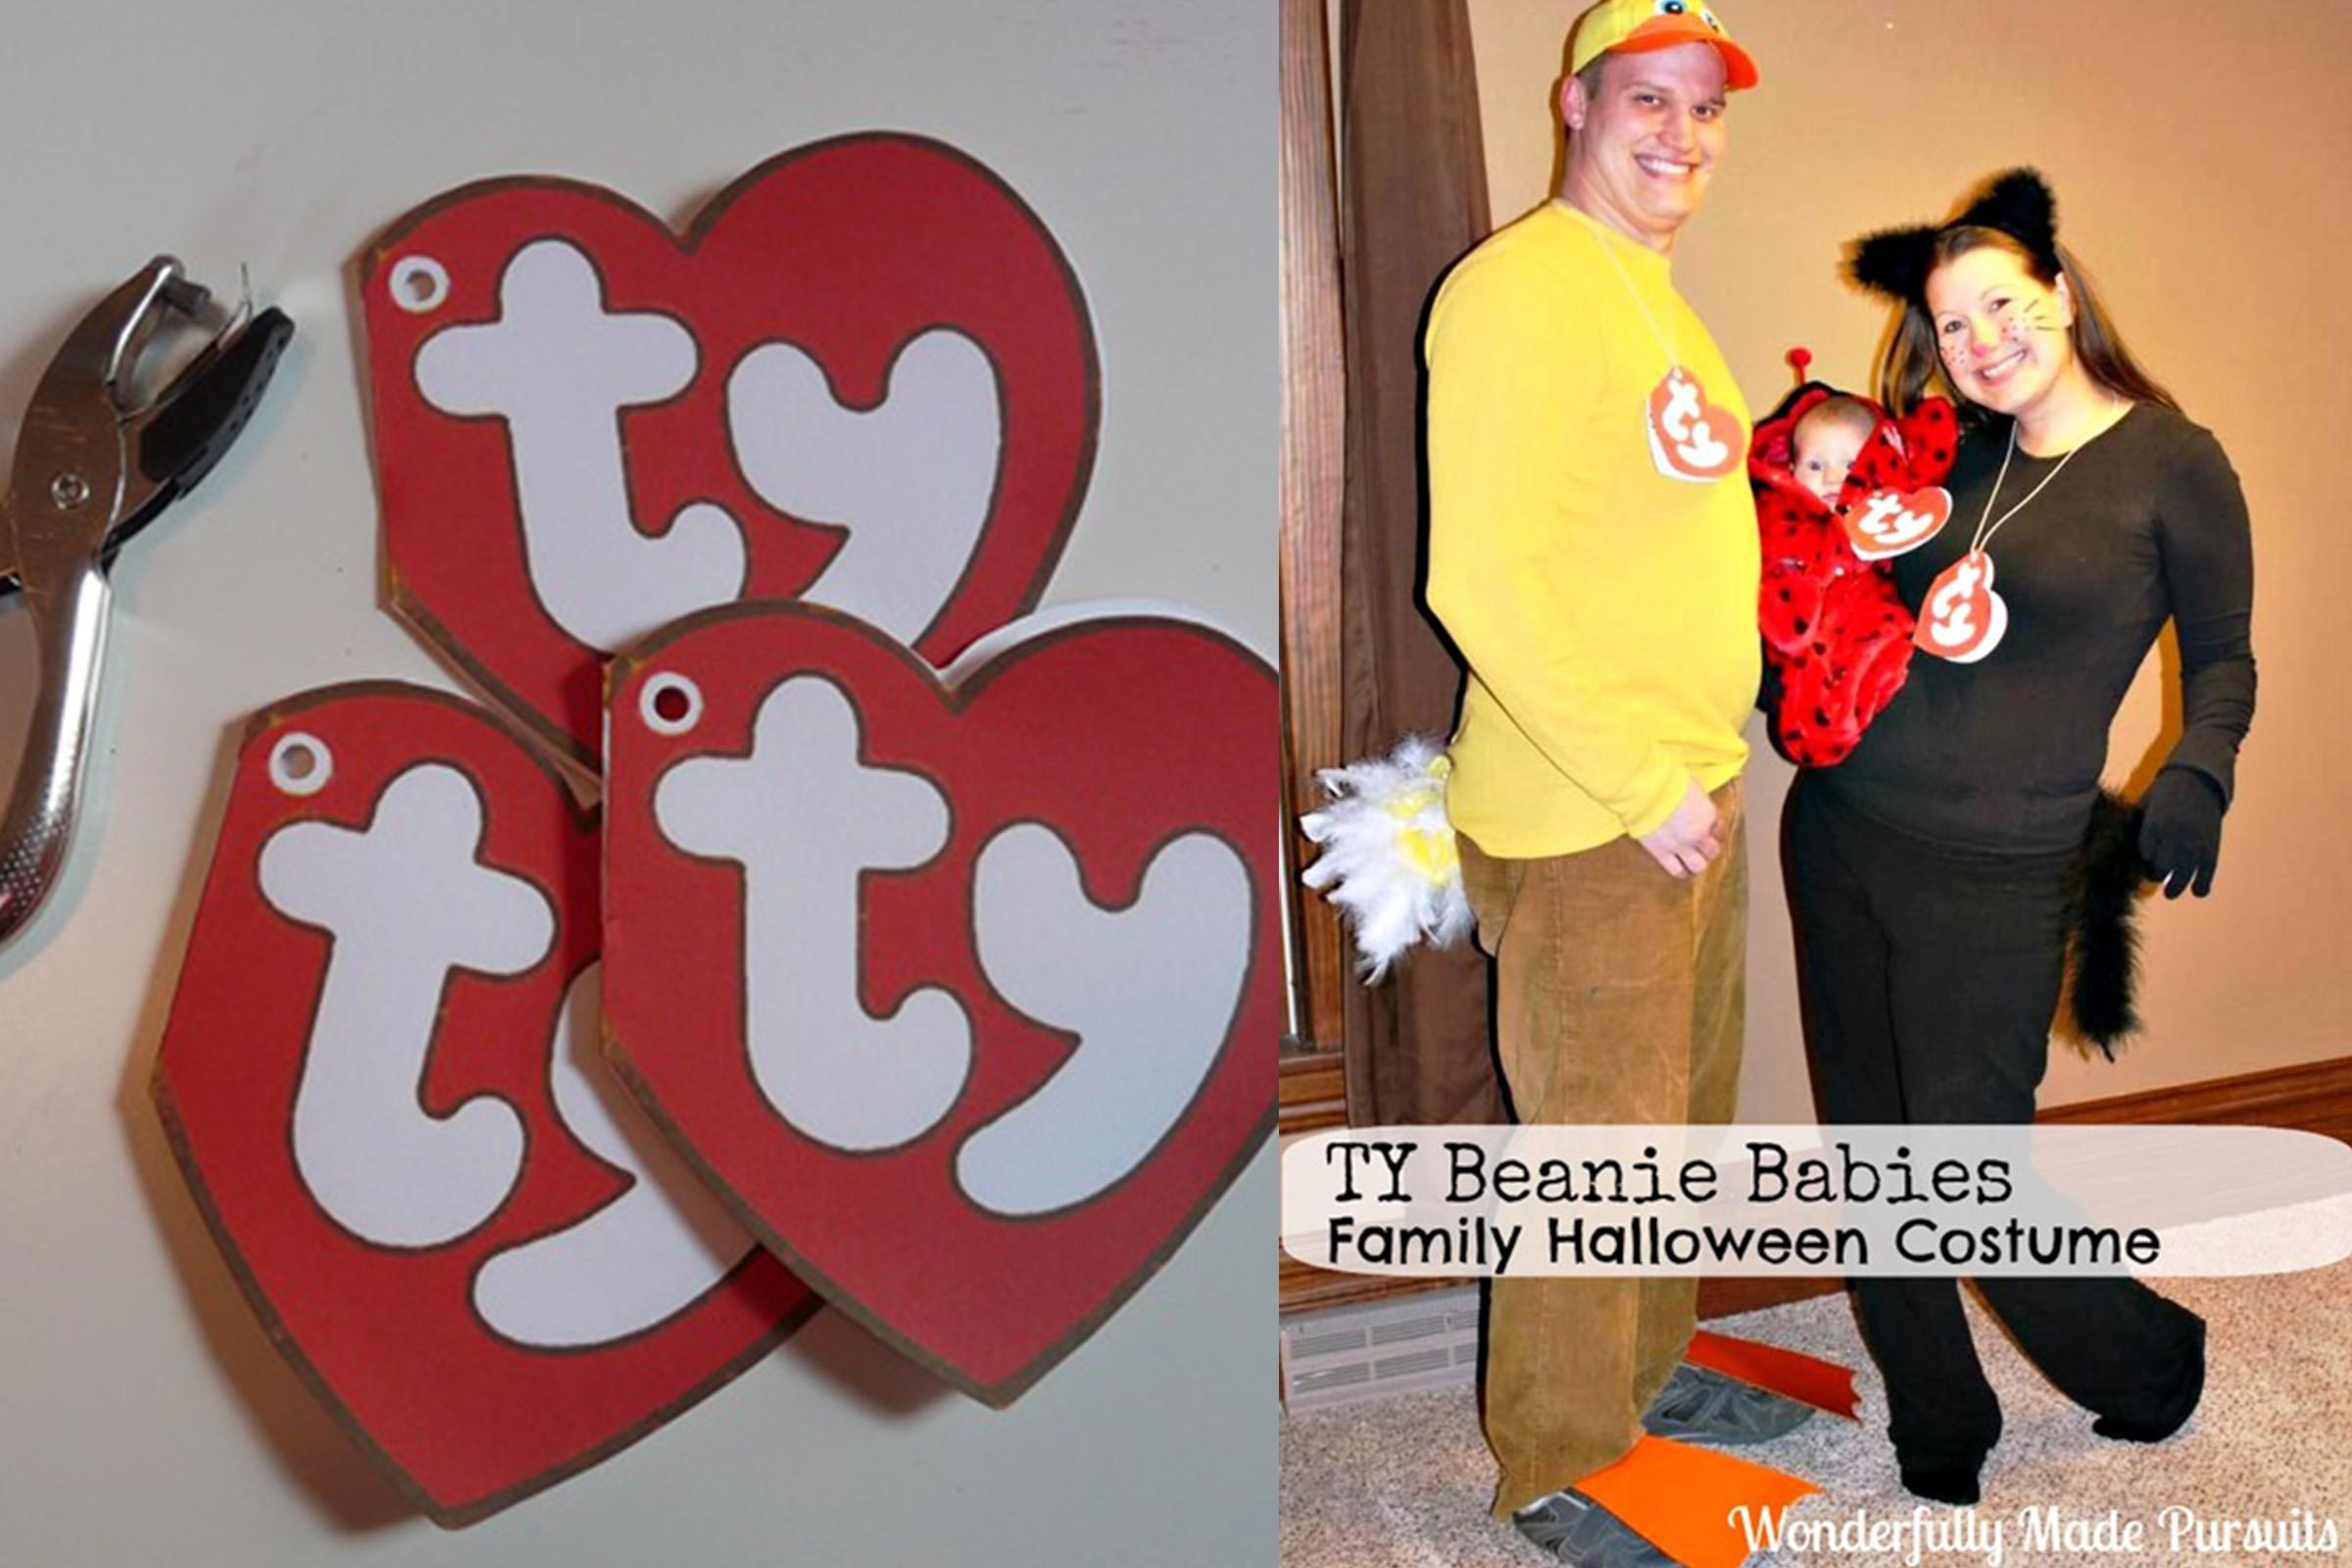 Cheap-Halloween-Costumes-for-Kids-Basically-Anyone-Can-DIY-Courtesy-Liz-Runge